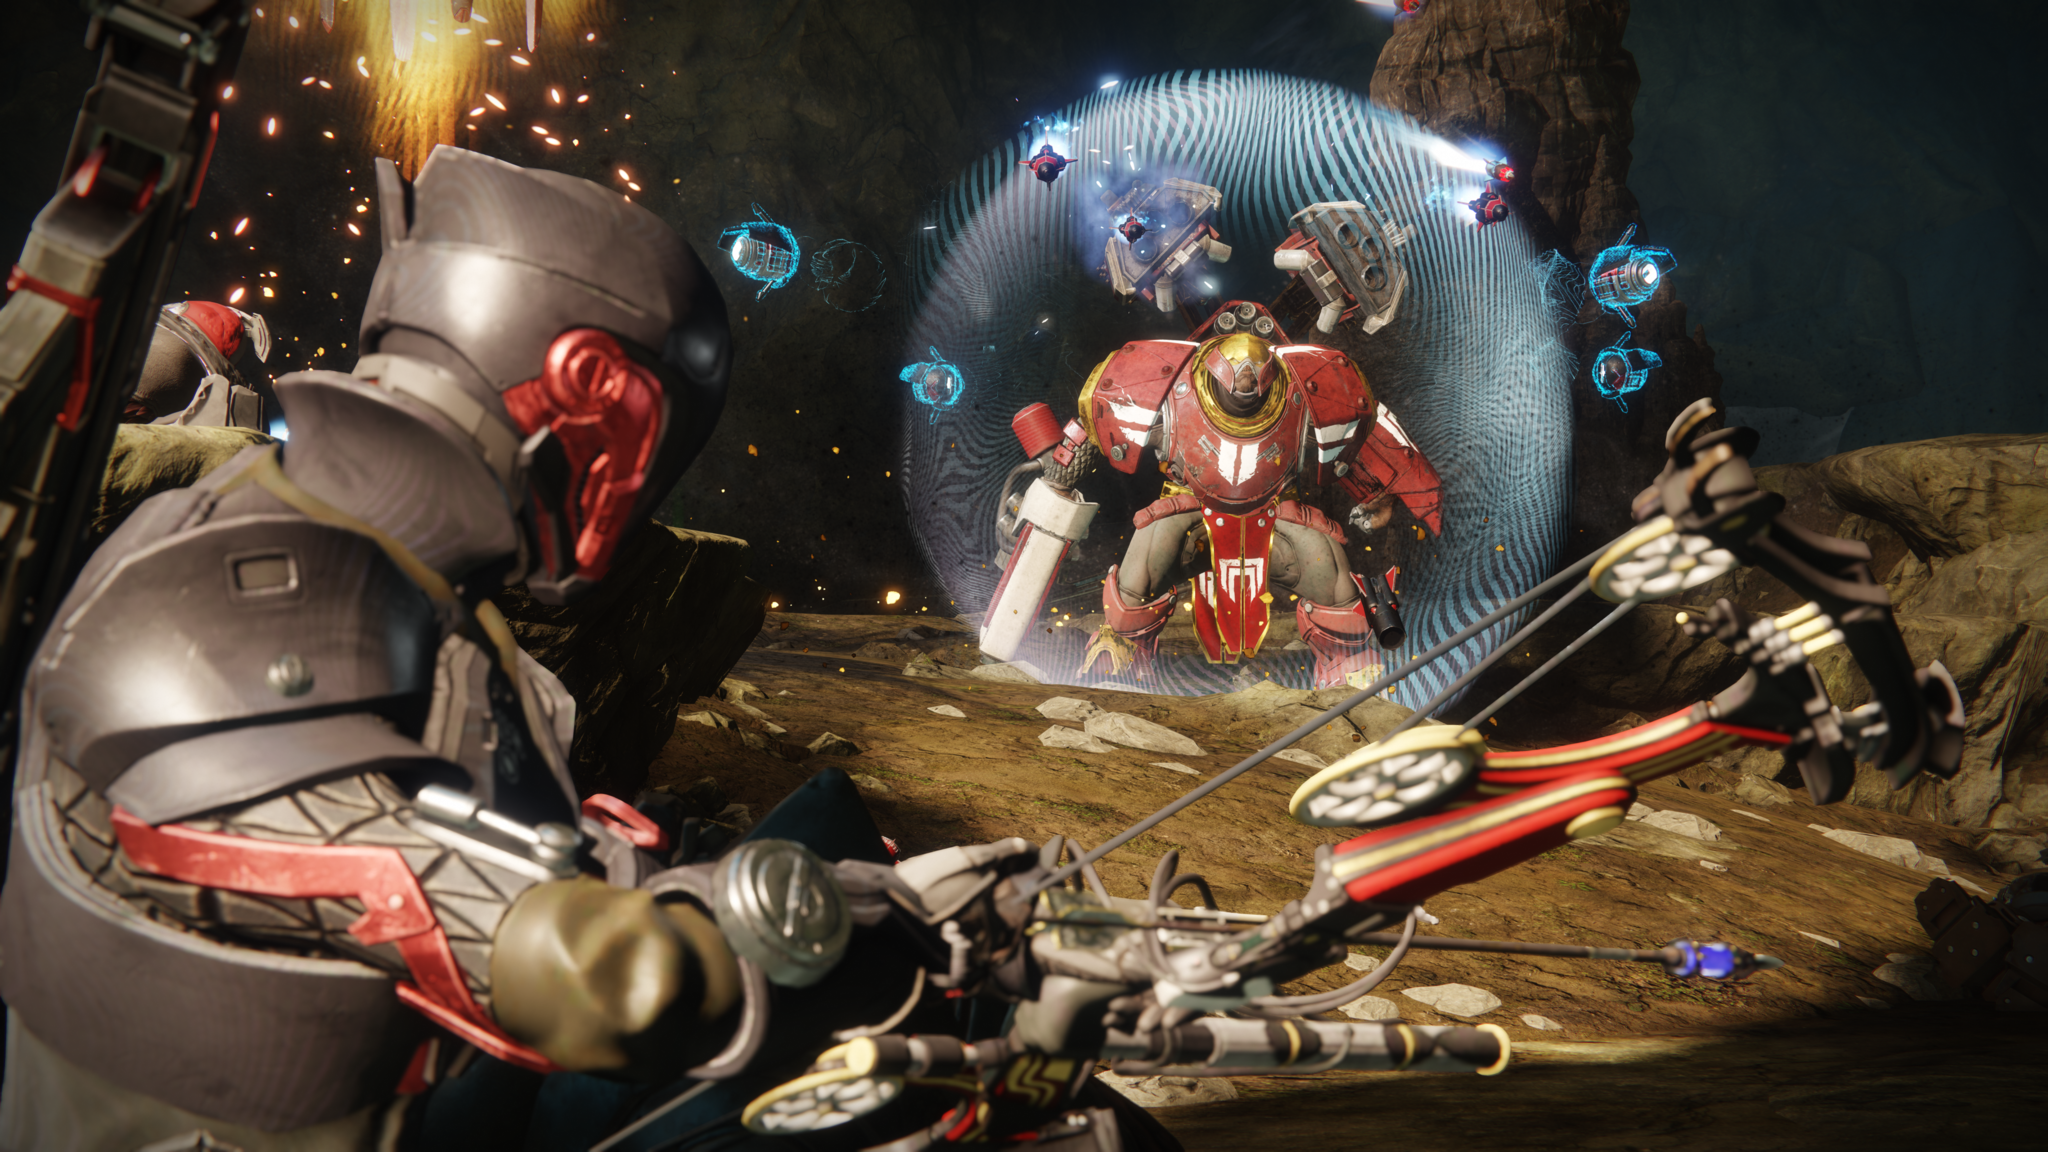 Sources: Destiny 2 Is Coming To Google Stadia, Getting Cross-Save